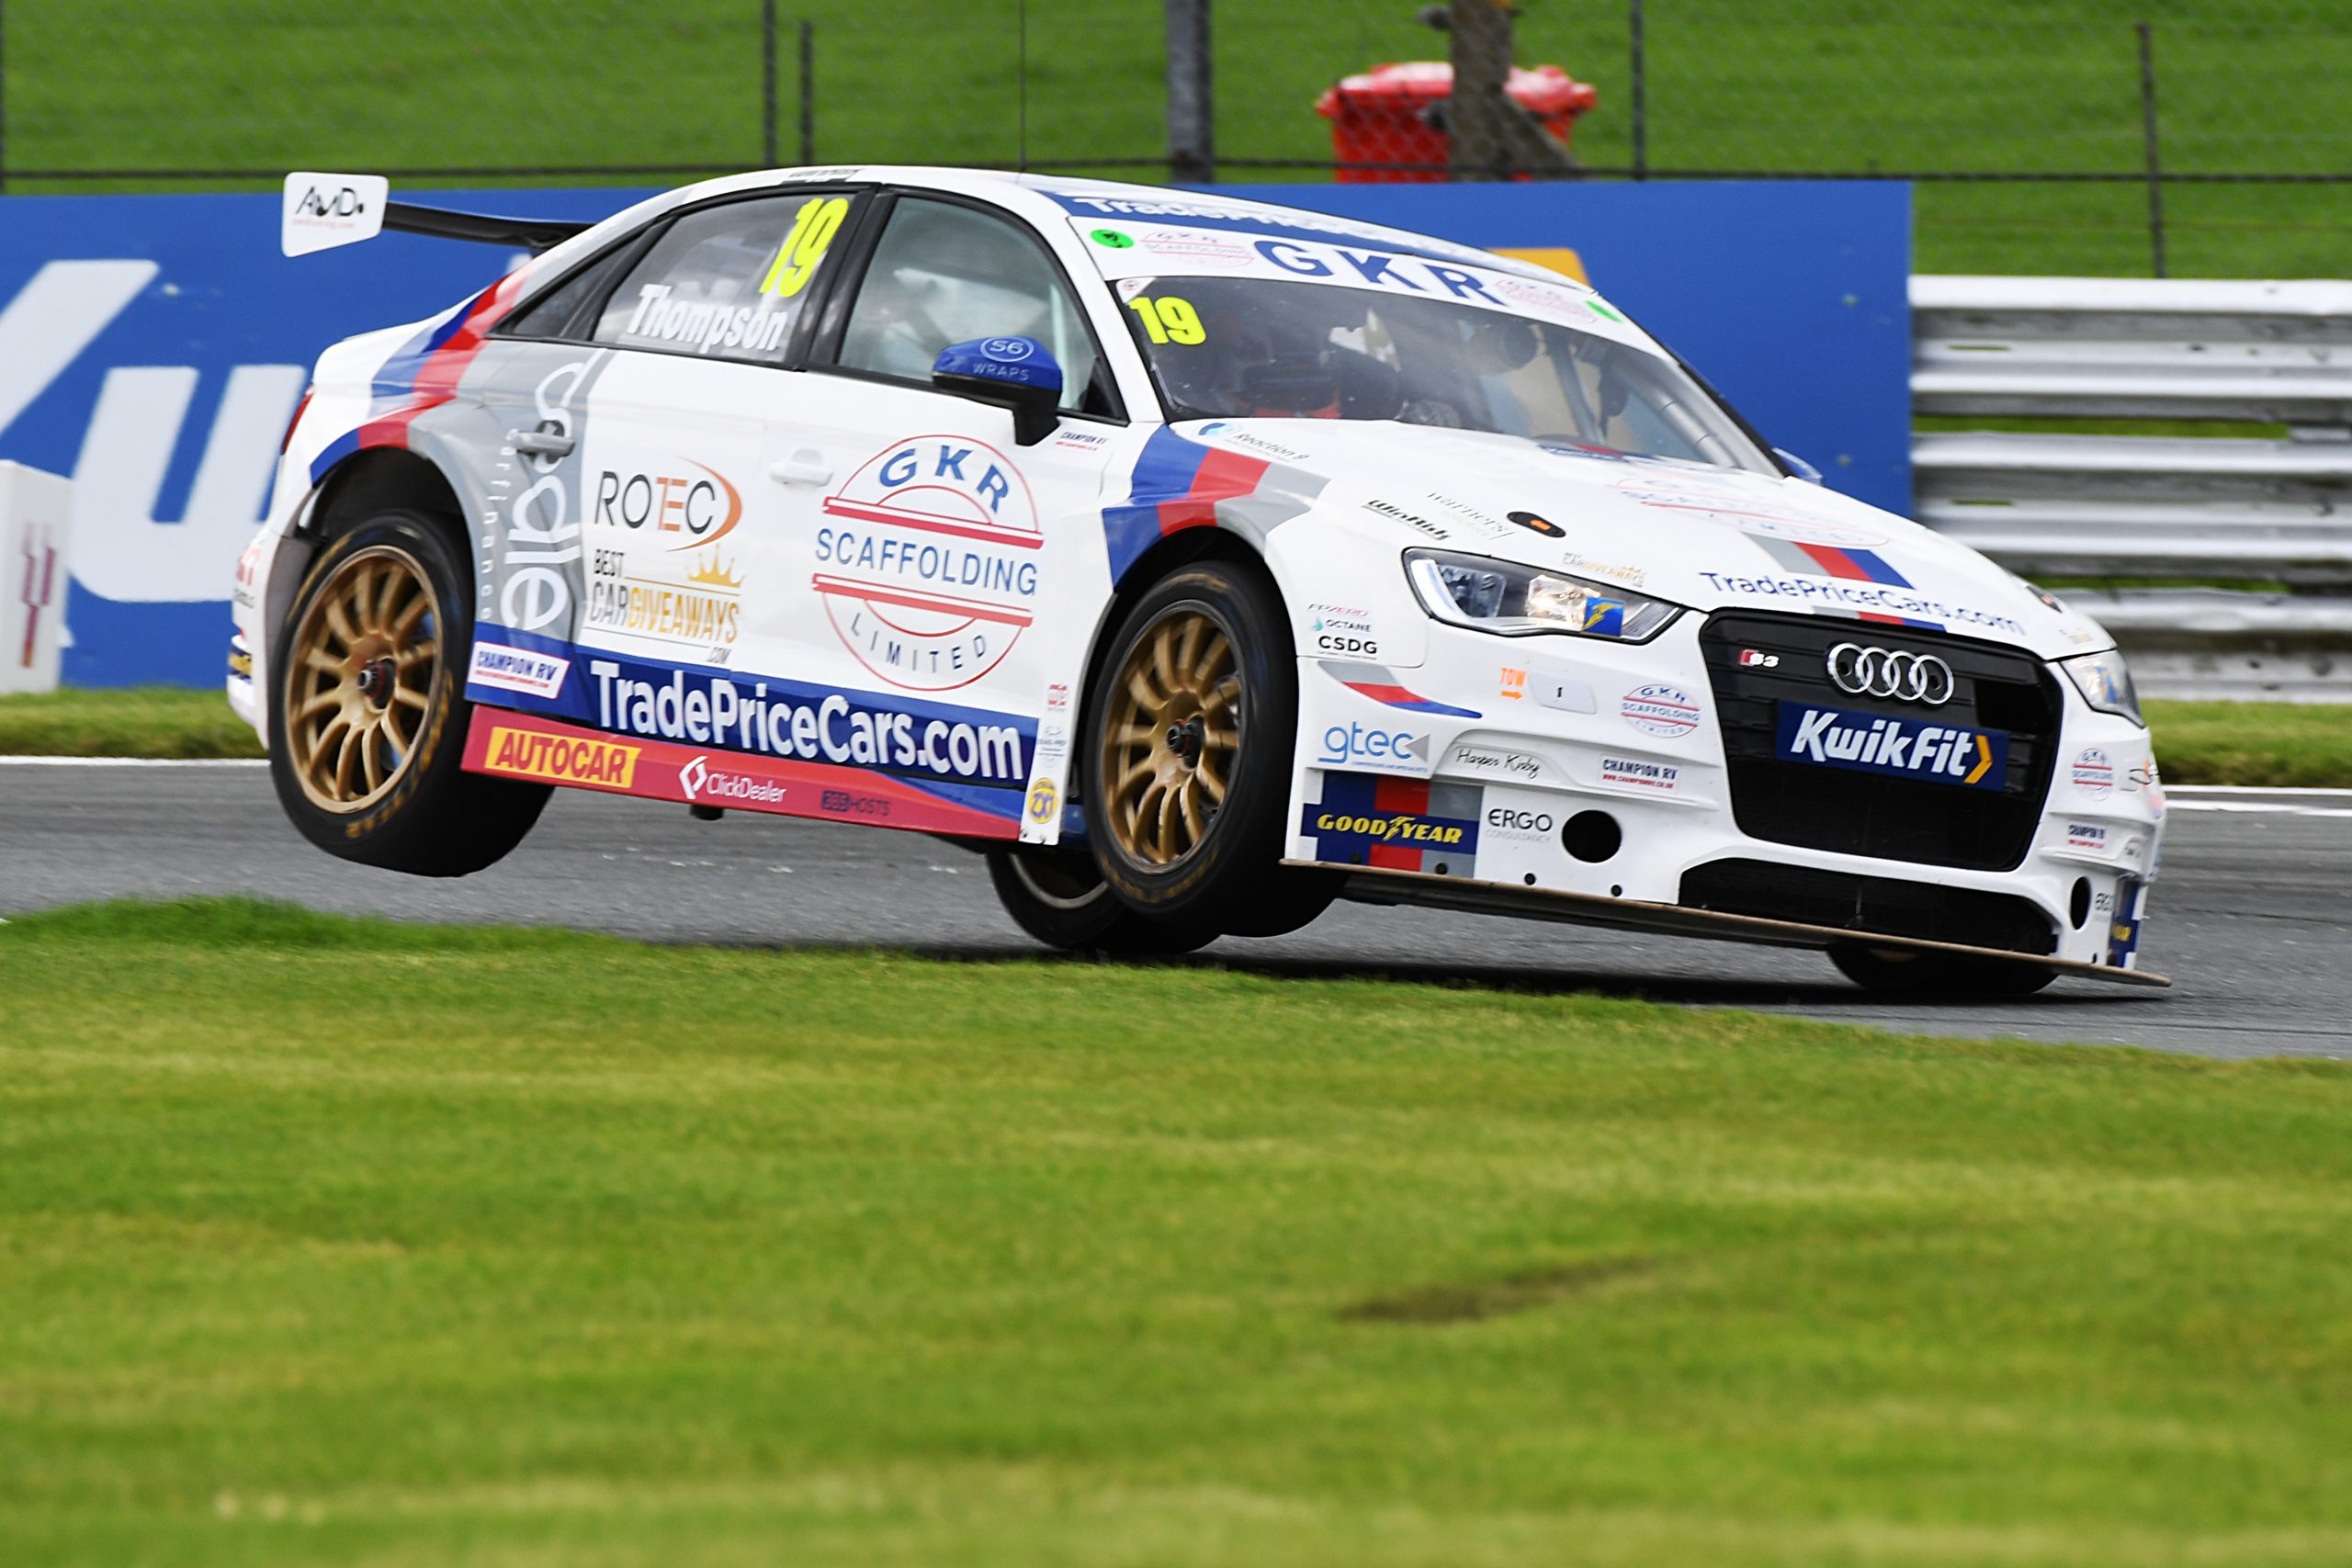 GKR TradePriceCars.com looks to maintain solid form at Knockhill